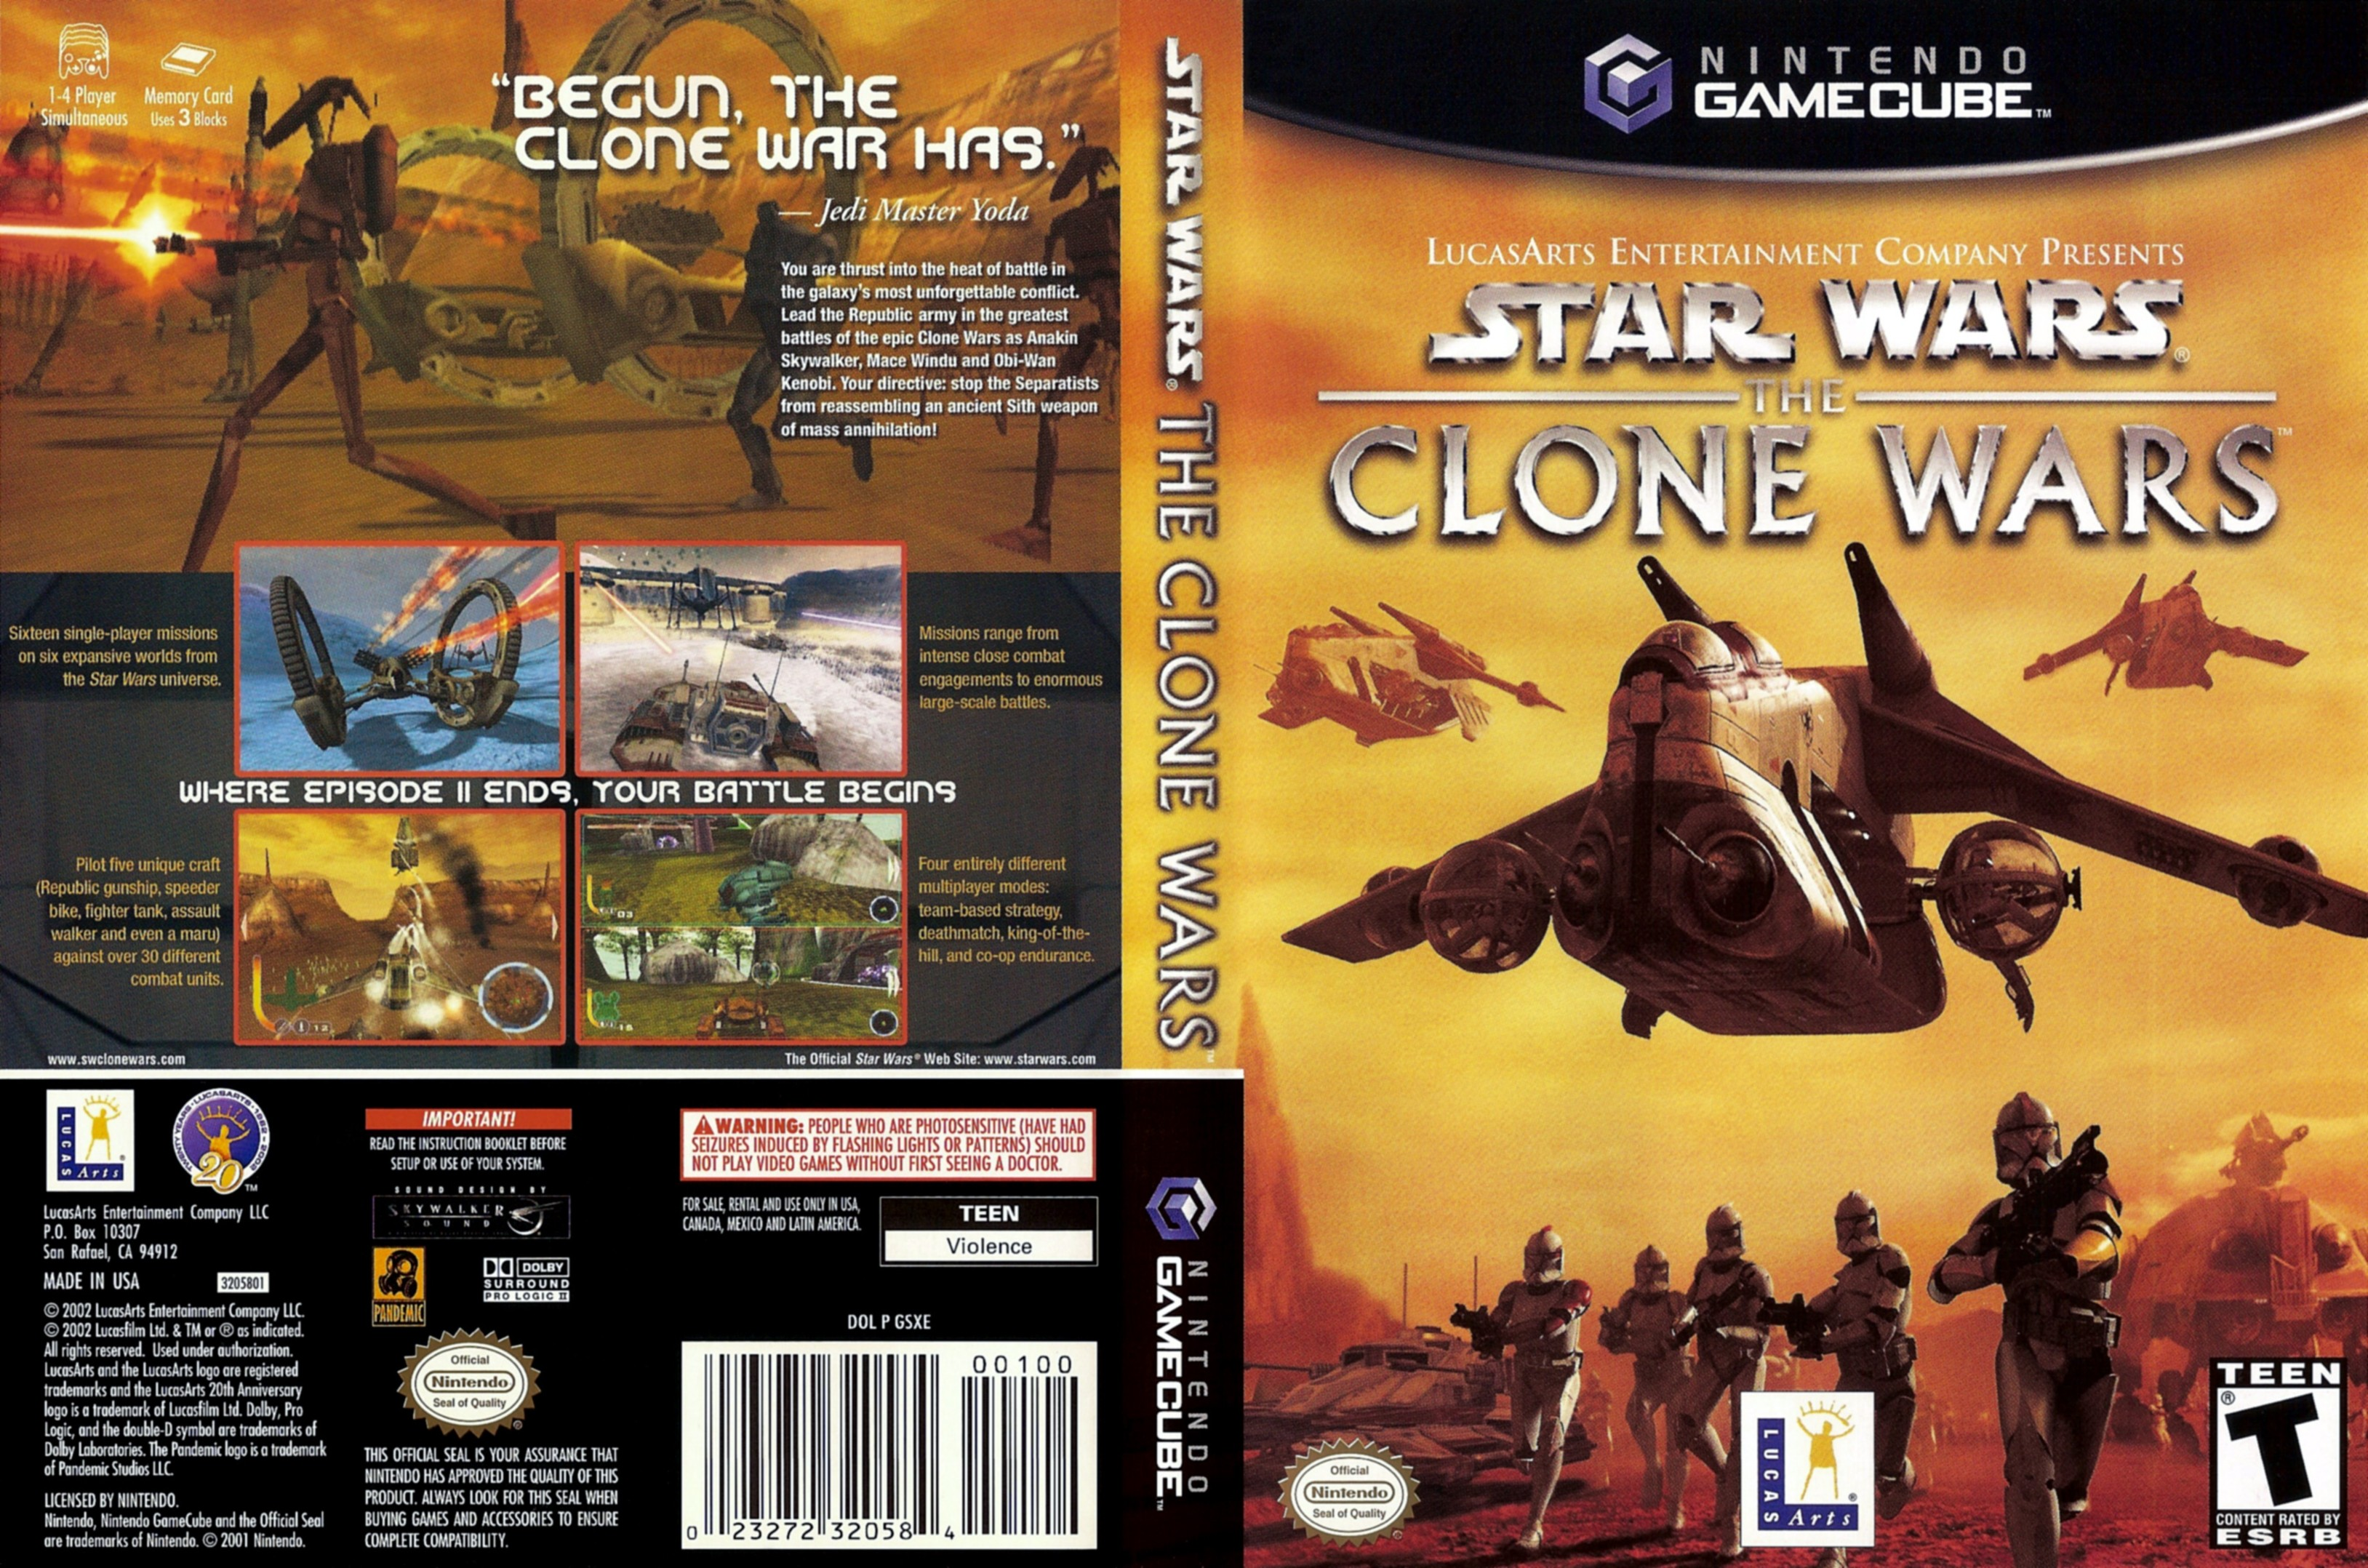 Star Wars Clone Wars Handheld Game Star Wars The Clone Wars Cover